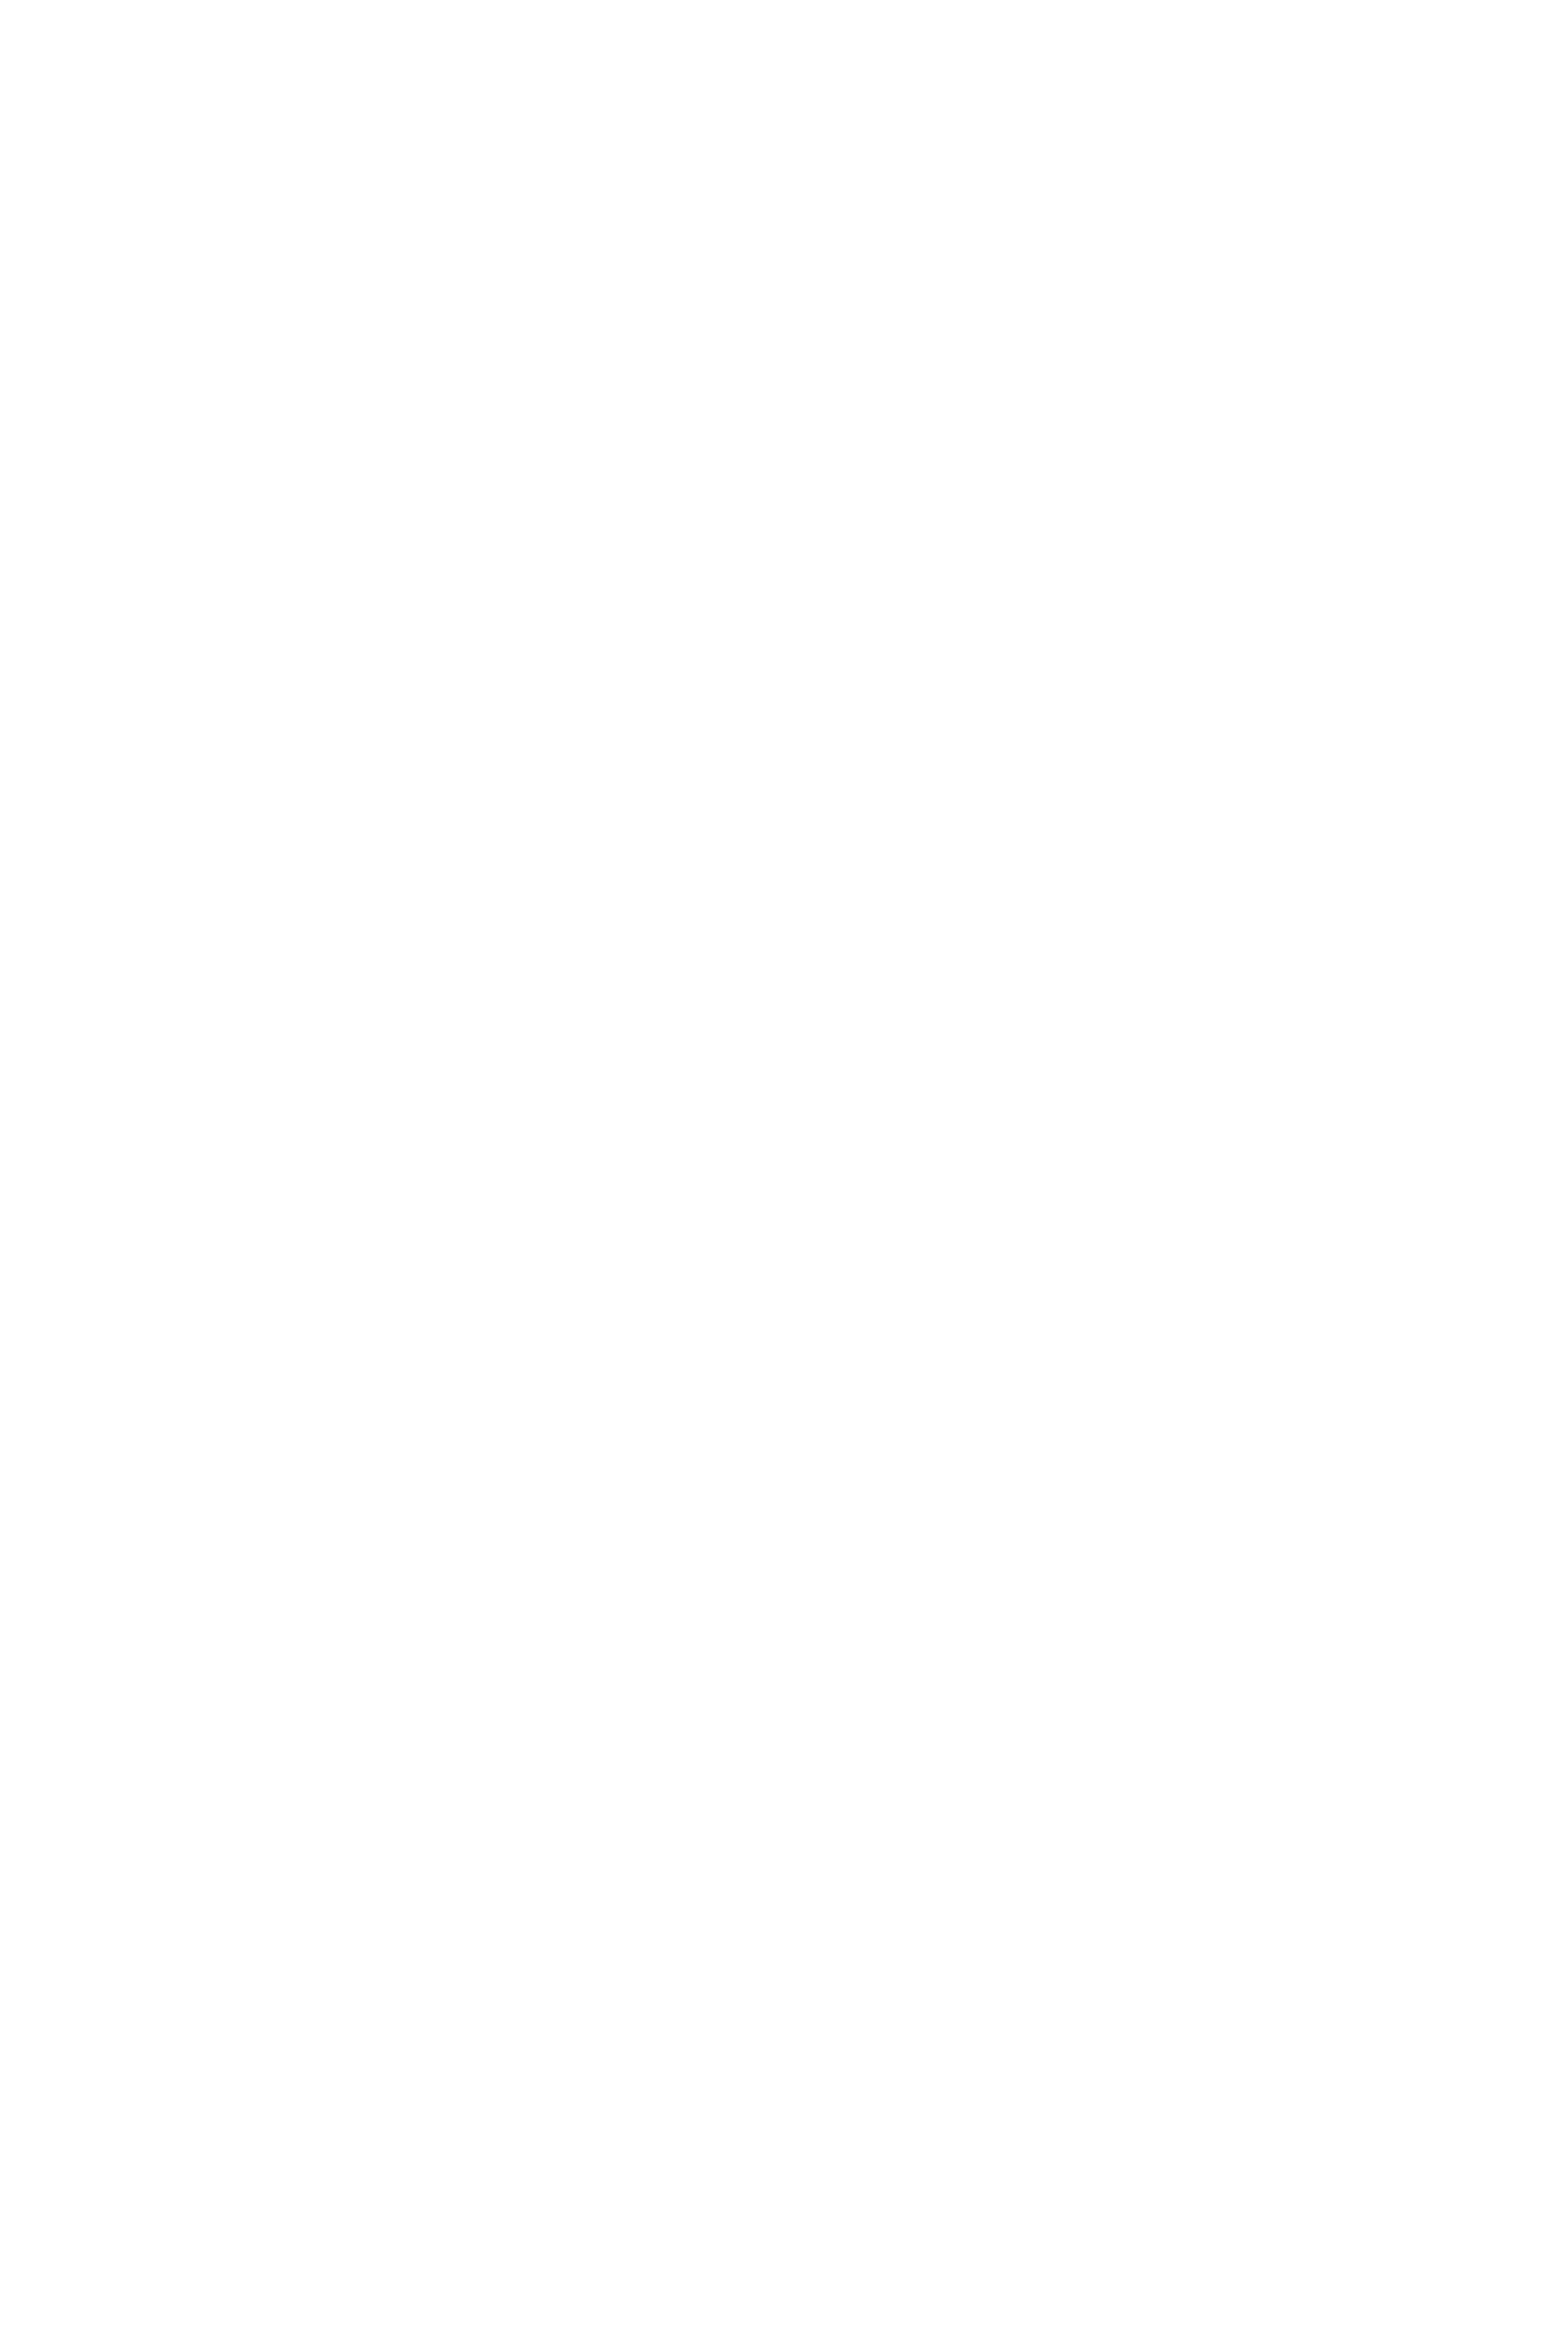 Pima County Master Naturalists